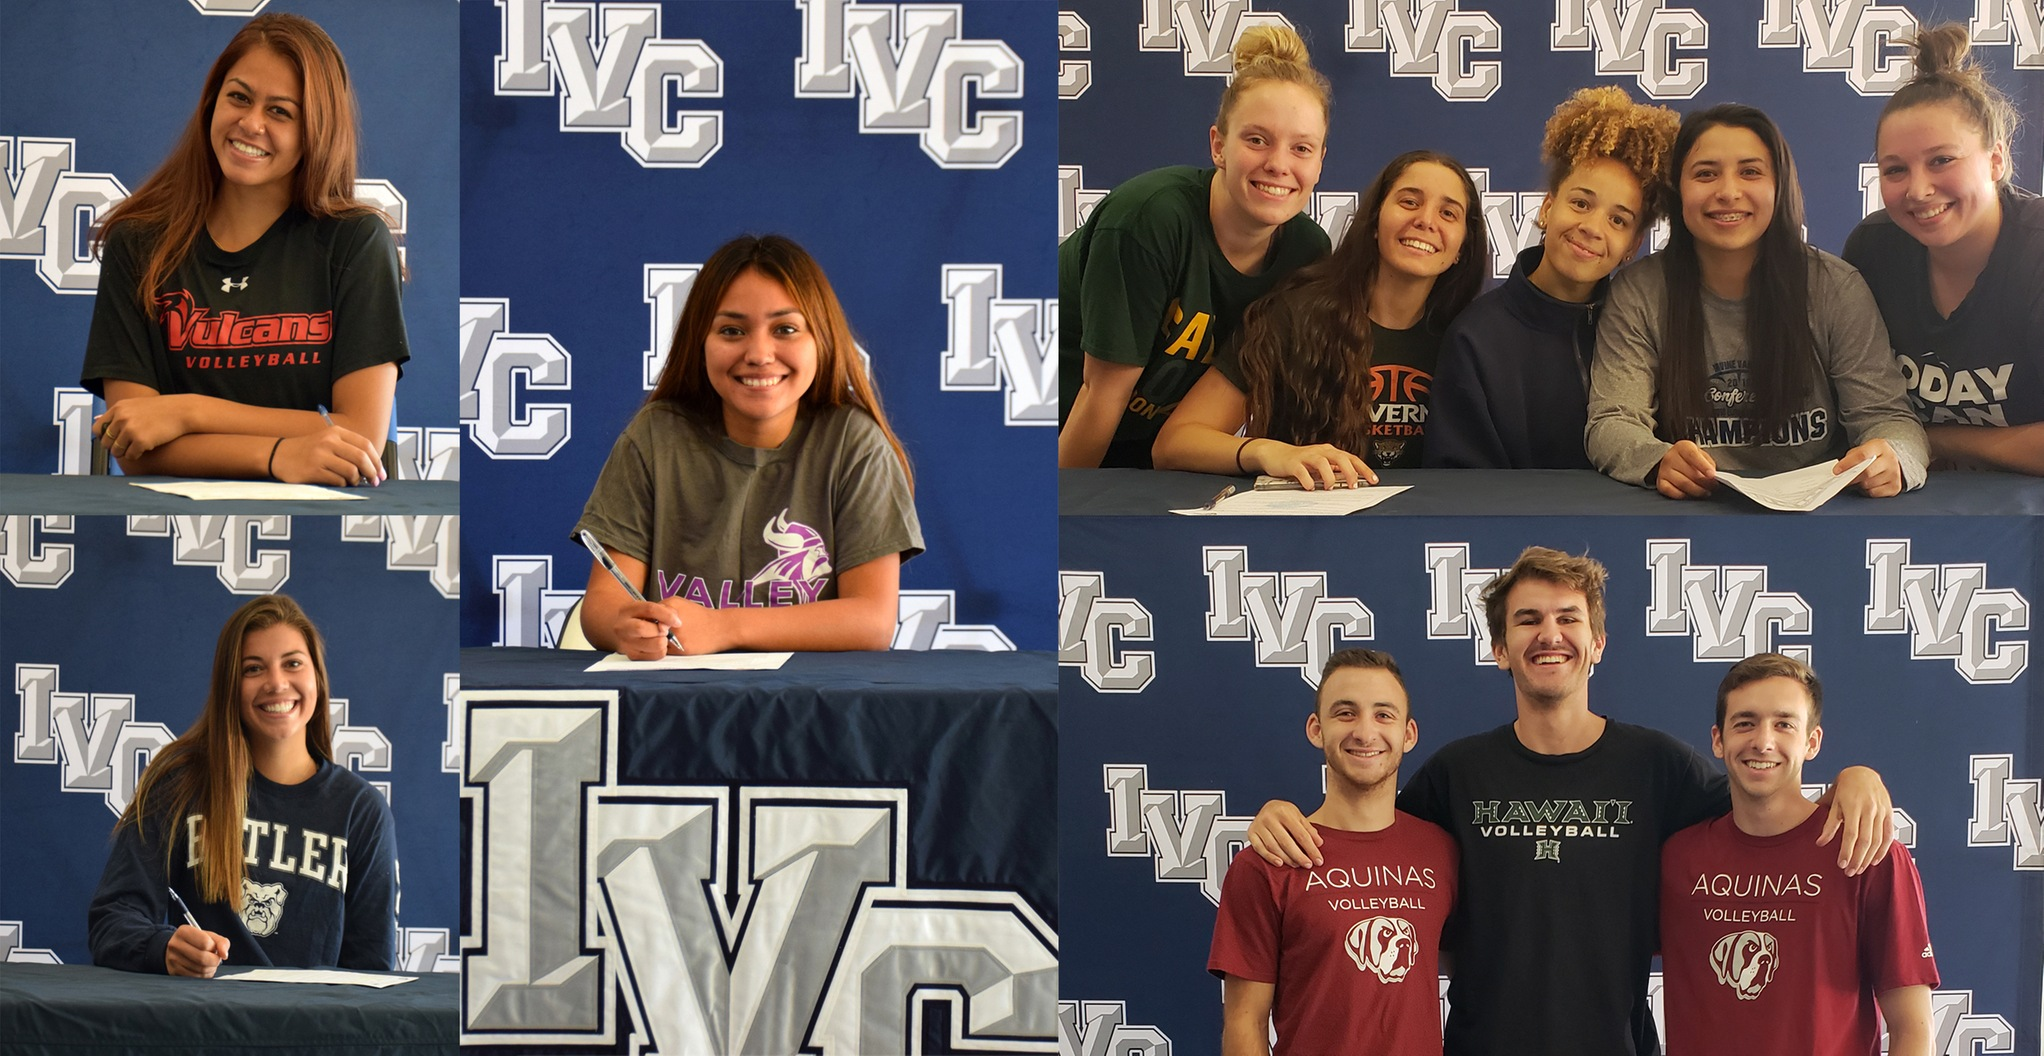 Honorable Mention Story of the Year - Athlete signings galore